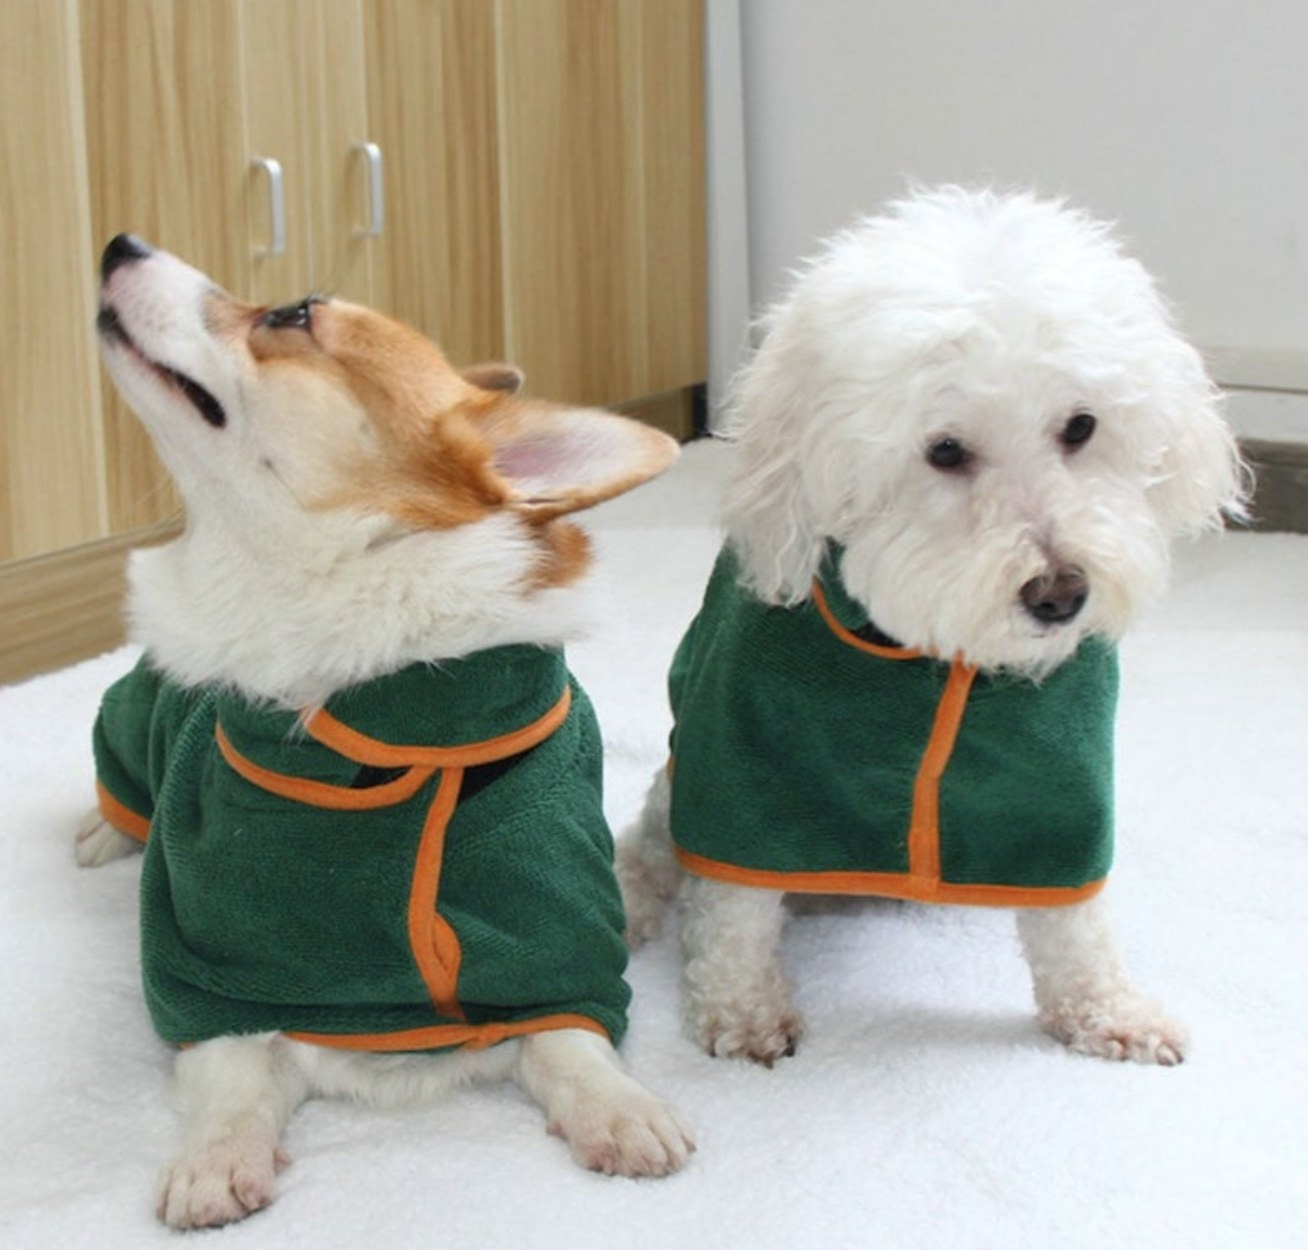 Two dogs in green bathrobes